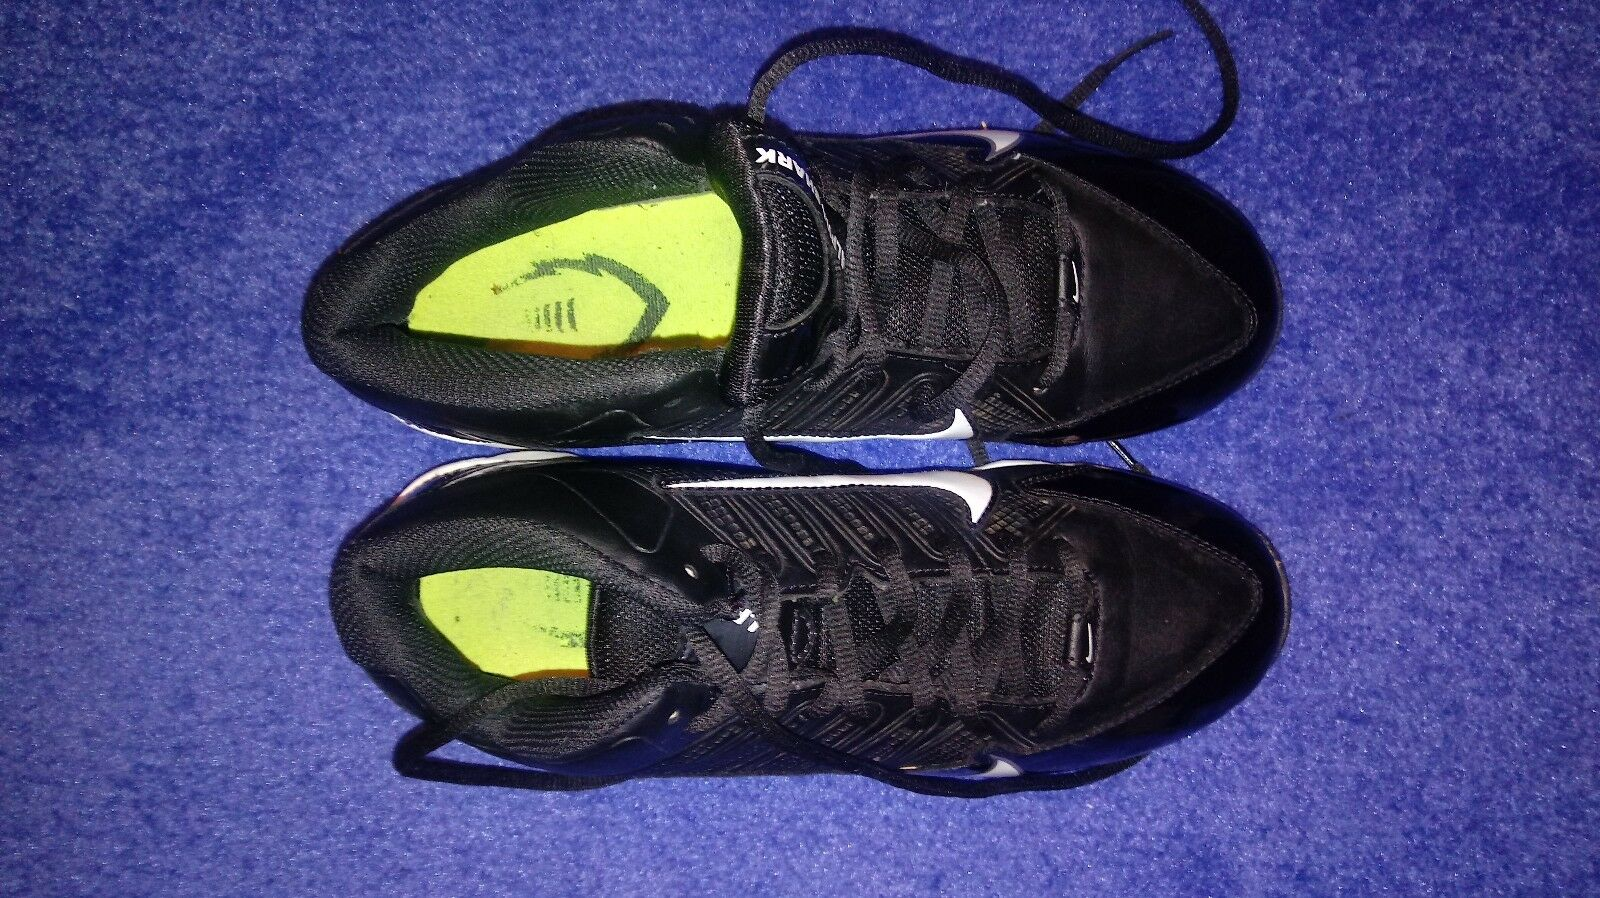 EUC Nike Mens 6.5 Black Athletic Cleats Shoes  The most popular shoes for men and women